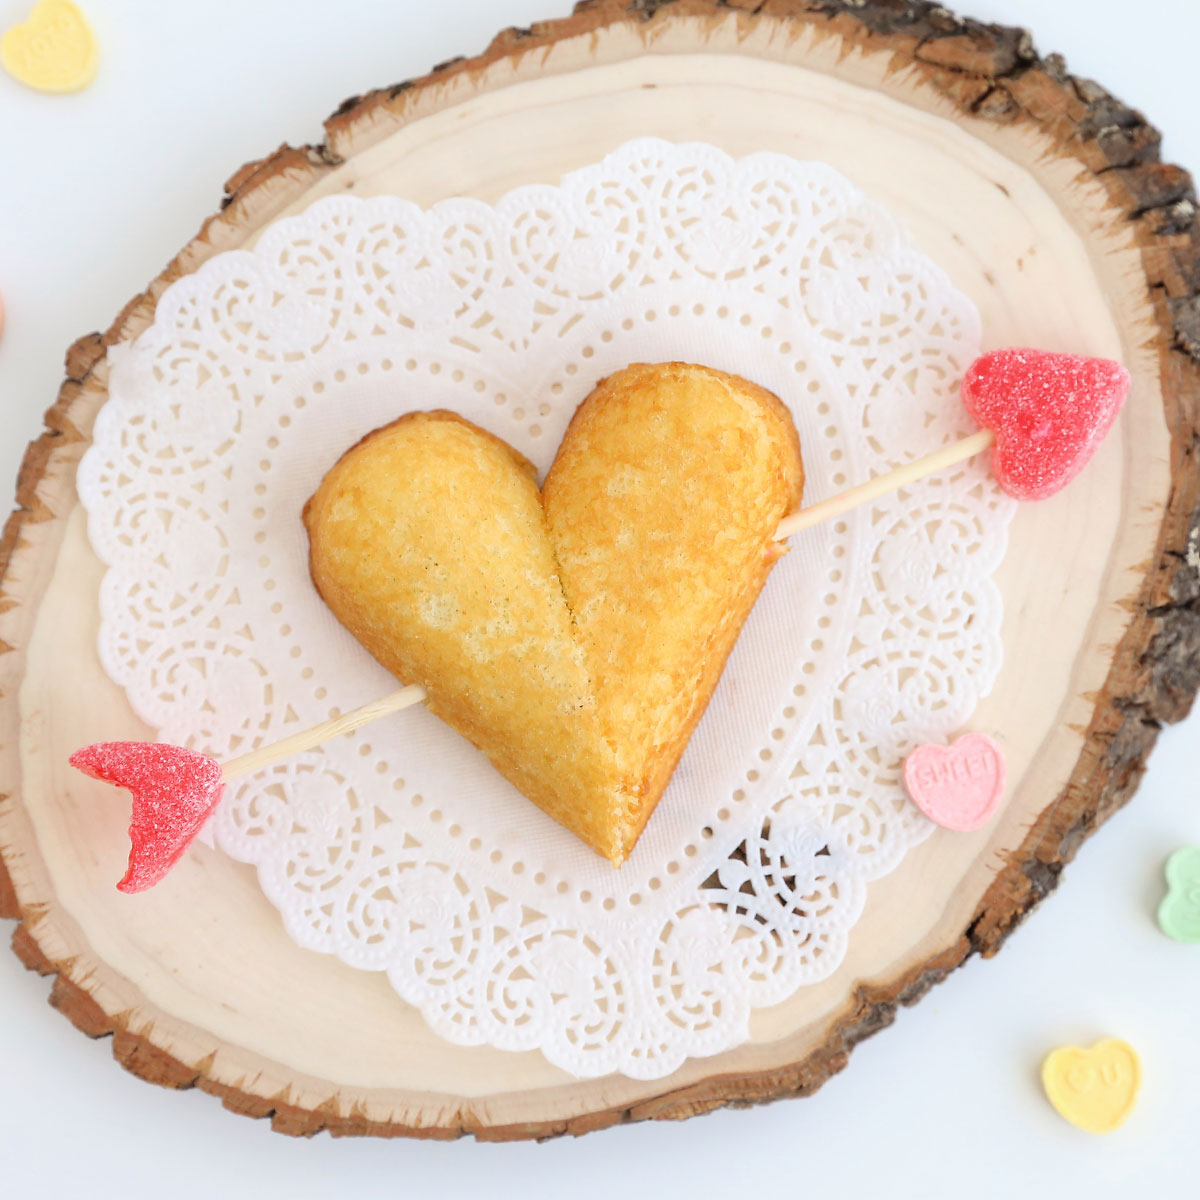 Twinkies cut to form heart shape with arrow through it made from skewer and jelly hearts